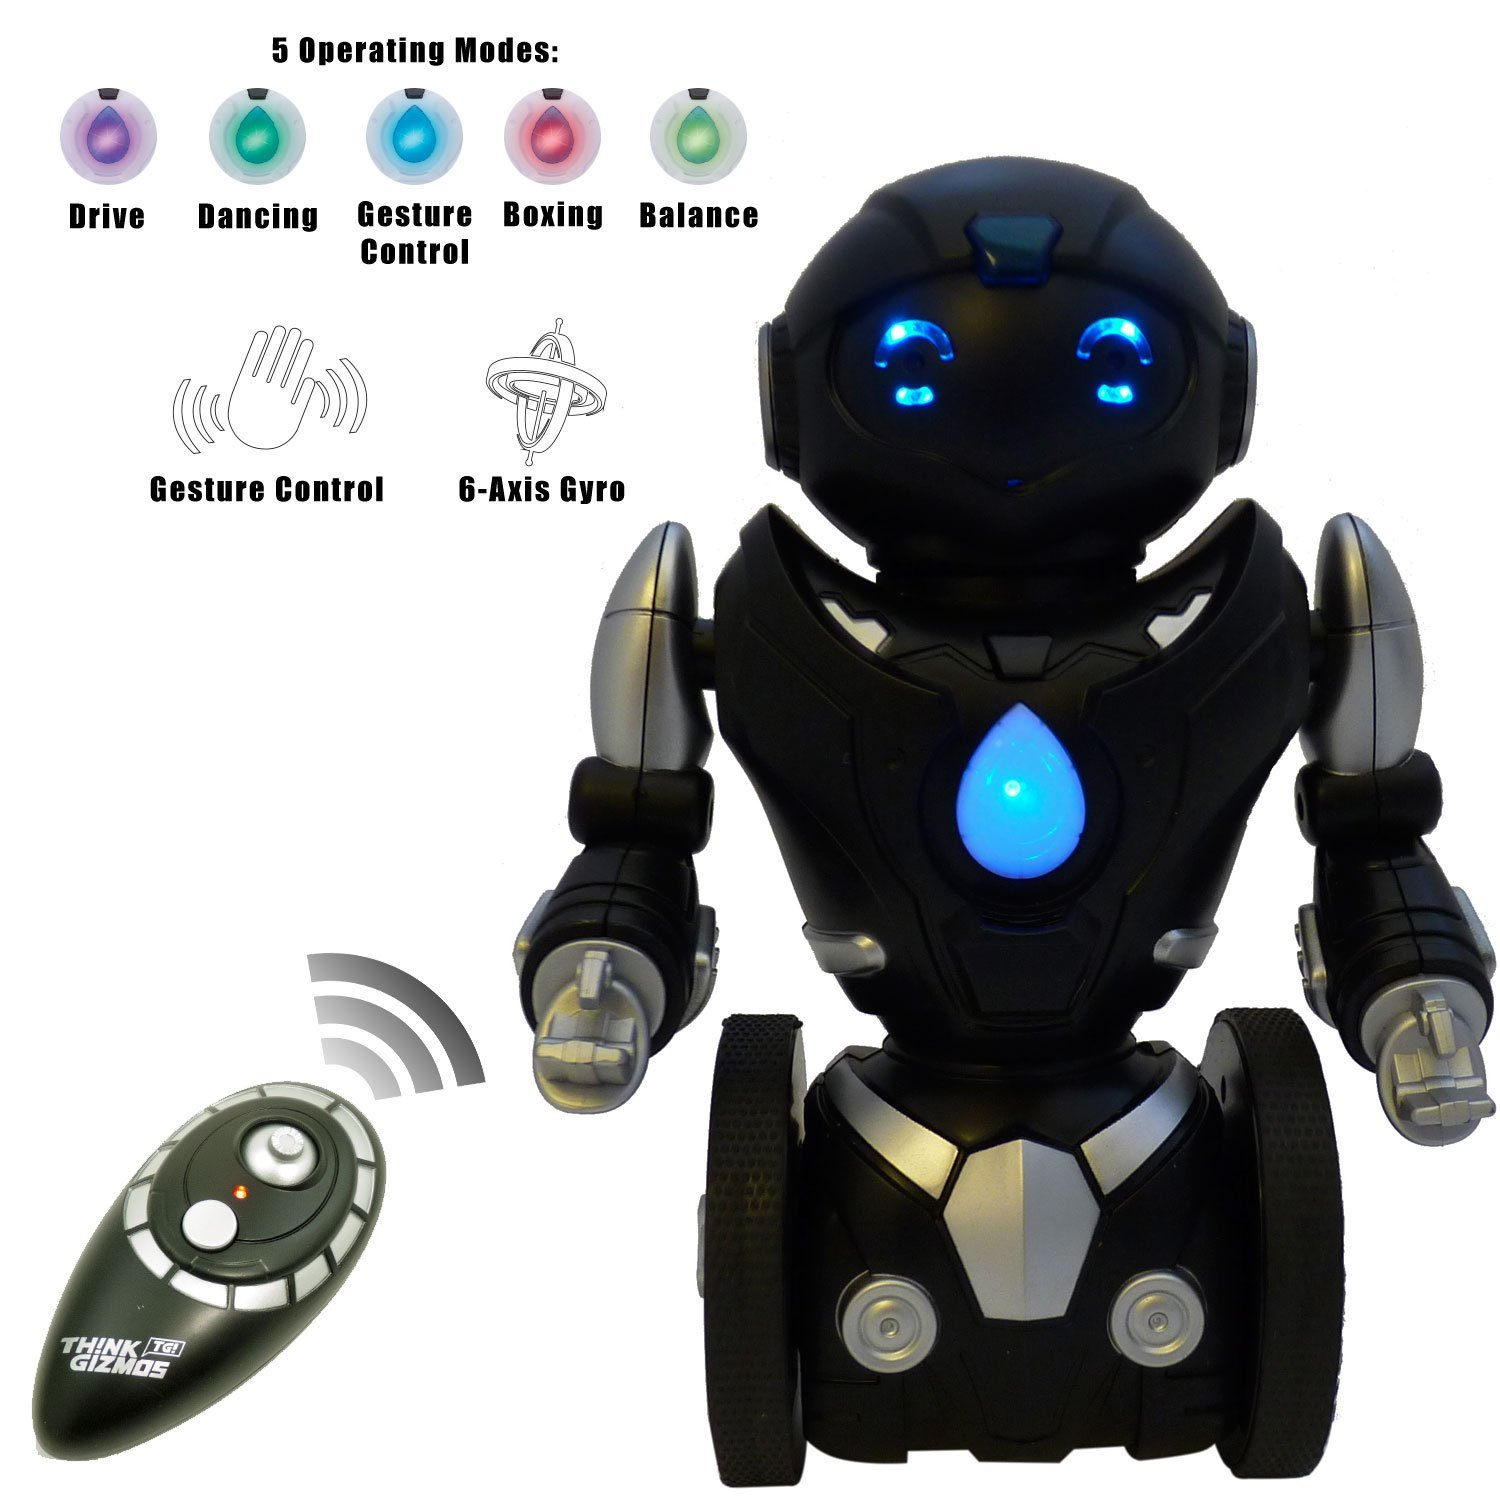 Remote Control Toy Robot For Kids TG634-S - Black & Silver Balance Robot